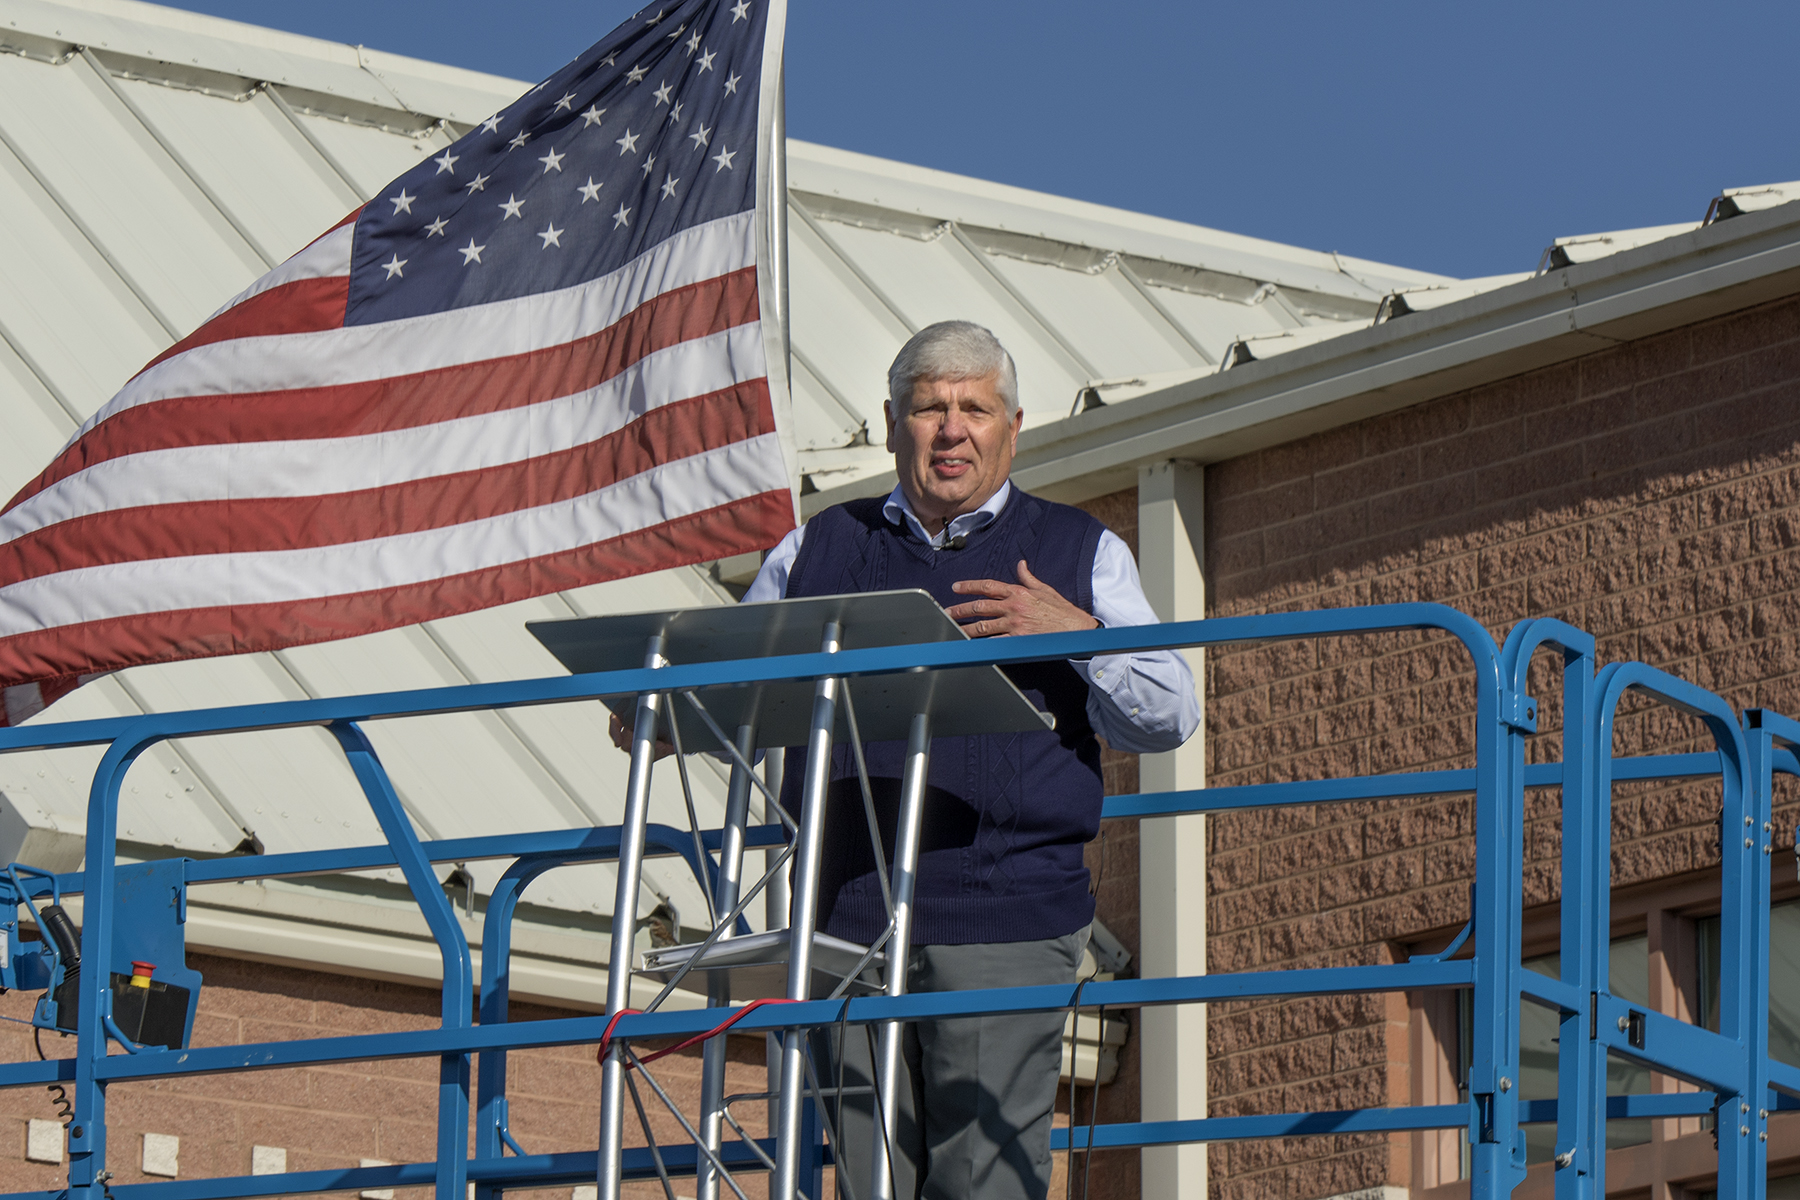 Pastor Frank Carl preaches atop a scissor lift at Genoa Church in Westerville, Ohio